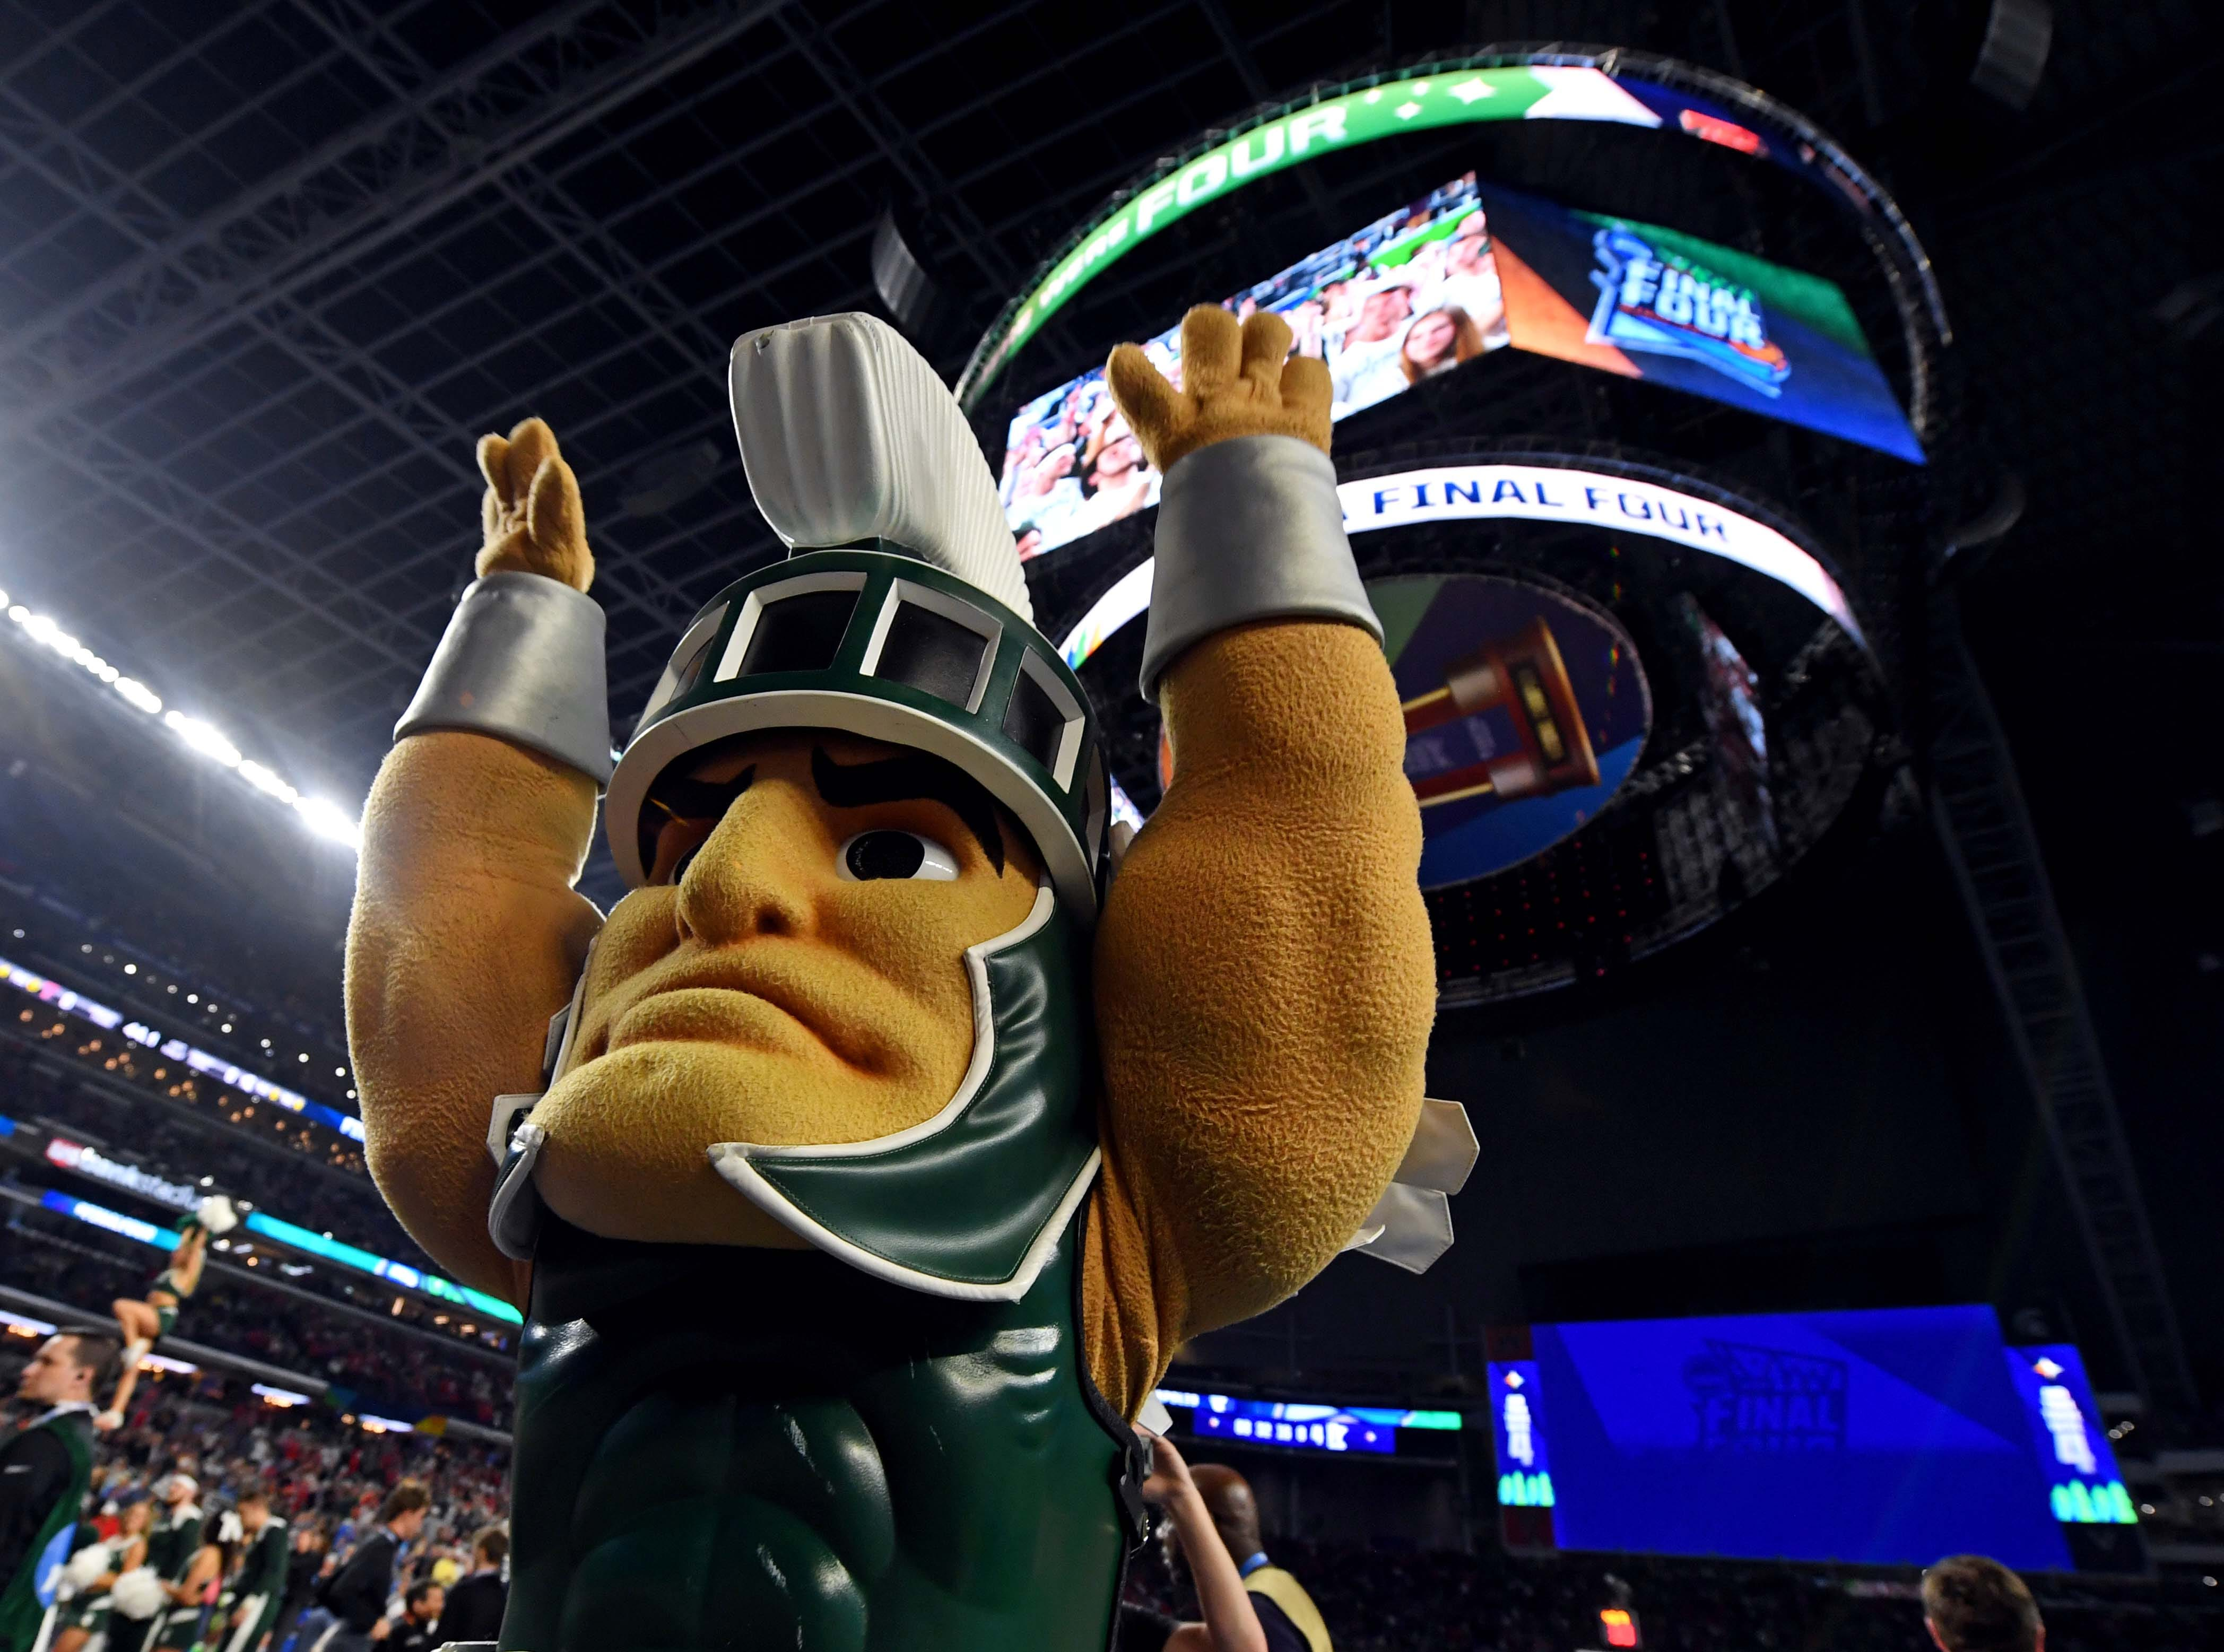 Apr 6, 2019; Minneapolis, MN, USA; The Michigan State Spartans mascot reacts before the game against the Texas Tech Red Raiders in the semifinals of the 2019 men's Final Four at US Bank Stadium. Mandatory Credit: Bob Donnan-USA TODAY Sports